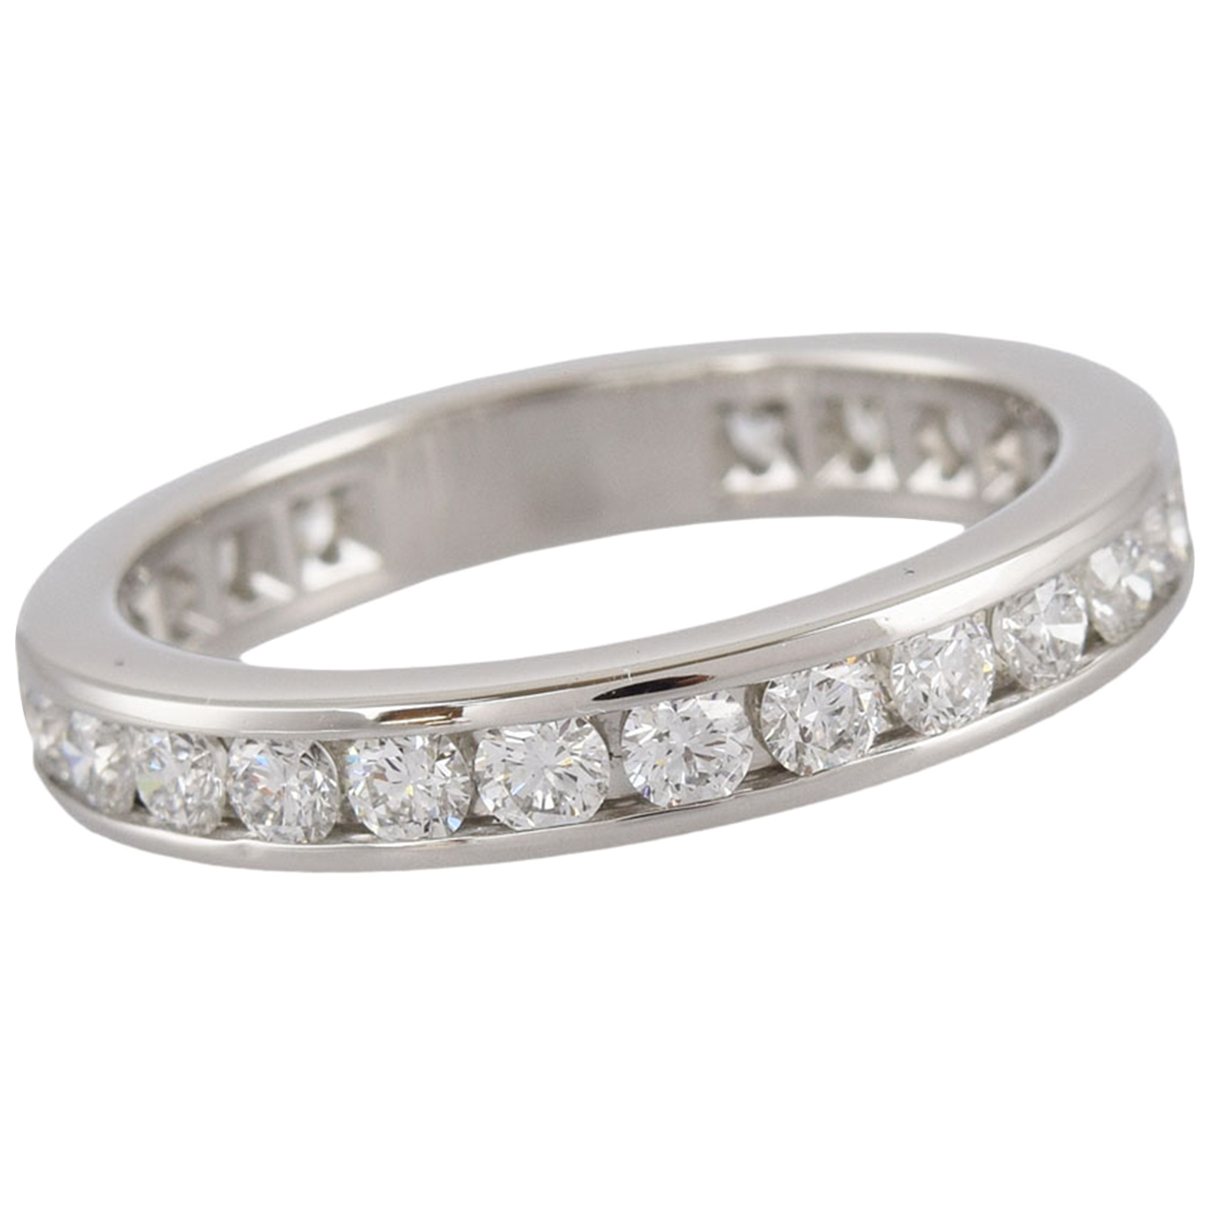 Tiffany & Co N Silver Platinum ring for Women 5 ¼ US